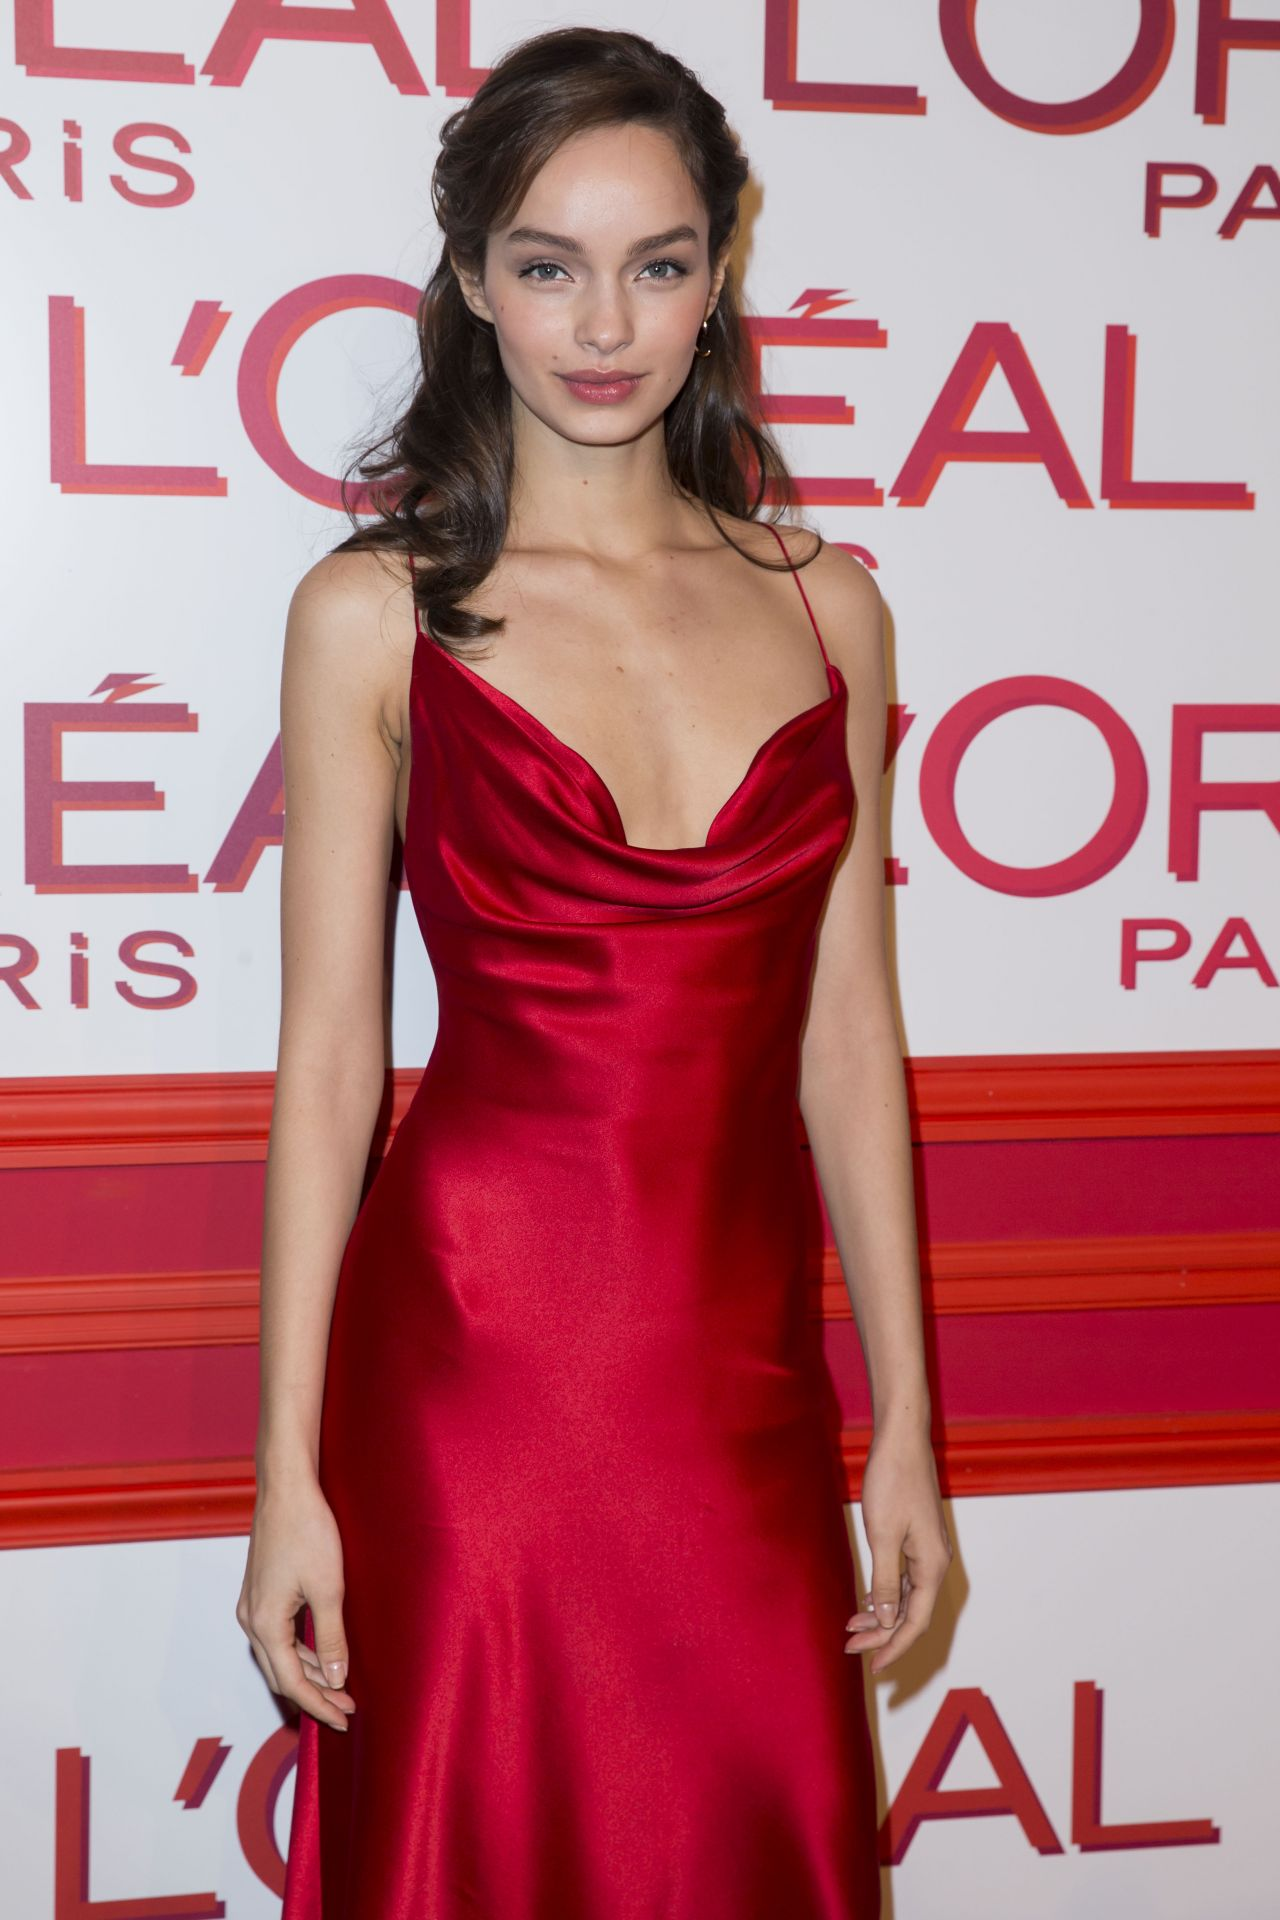 Luma Grothe Hot Revealing Red Dress - Luma Grothe Hot Revealing Red Dress